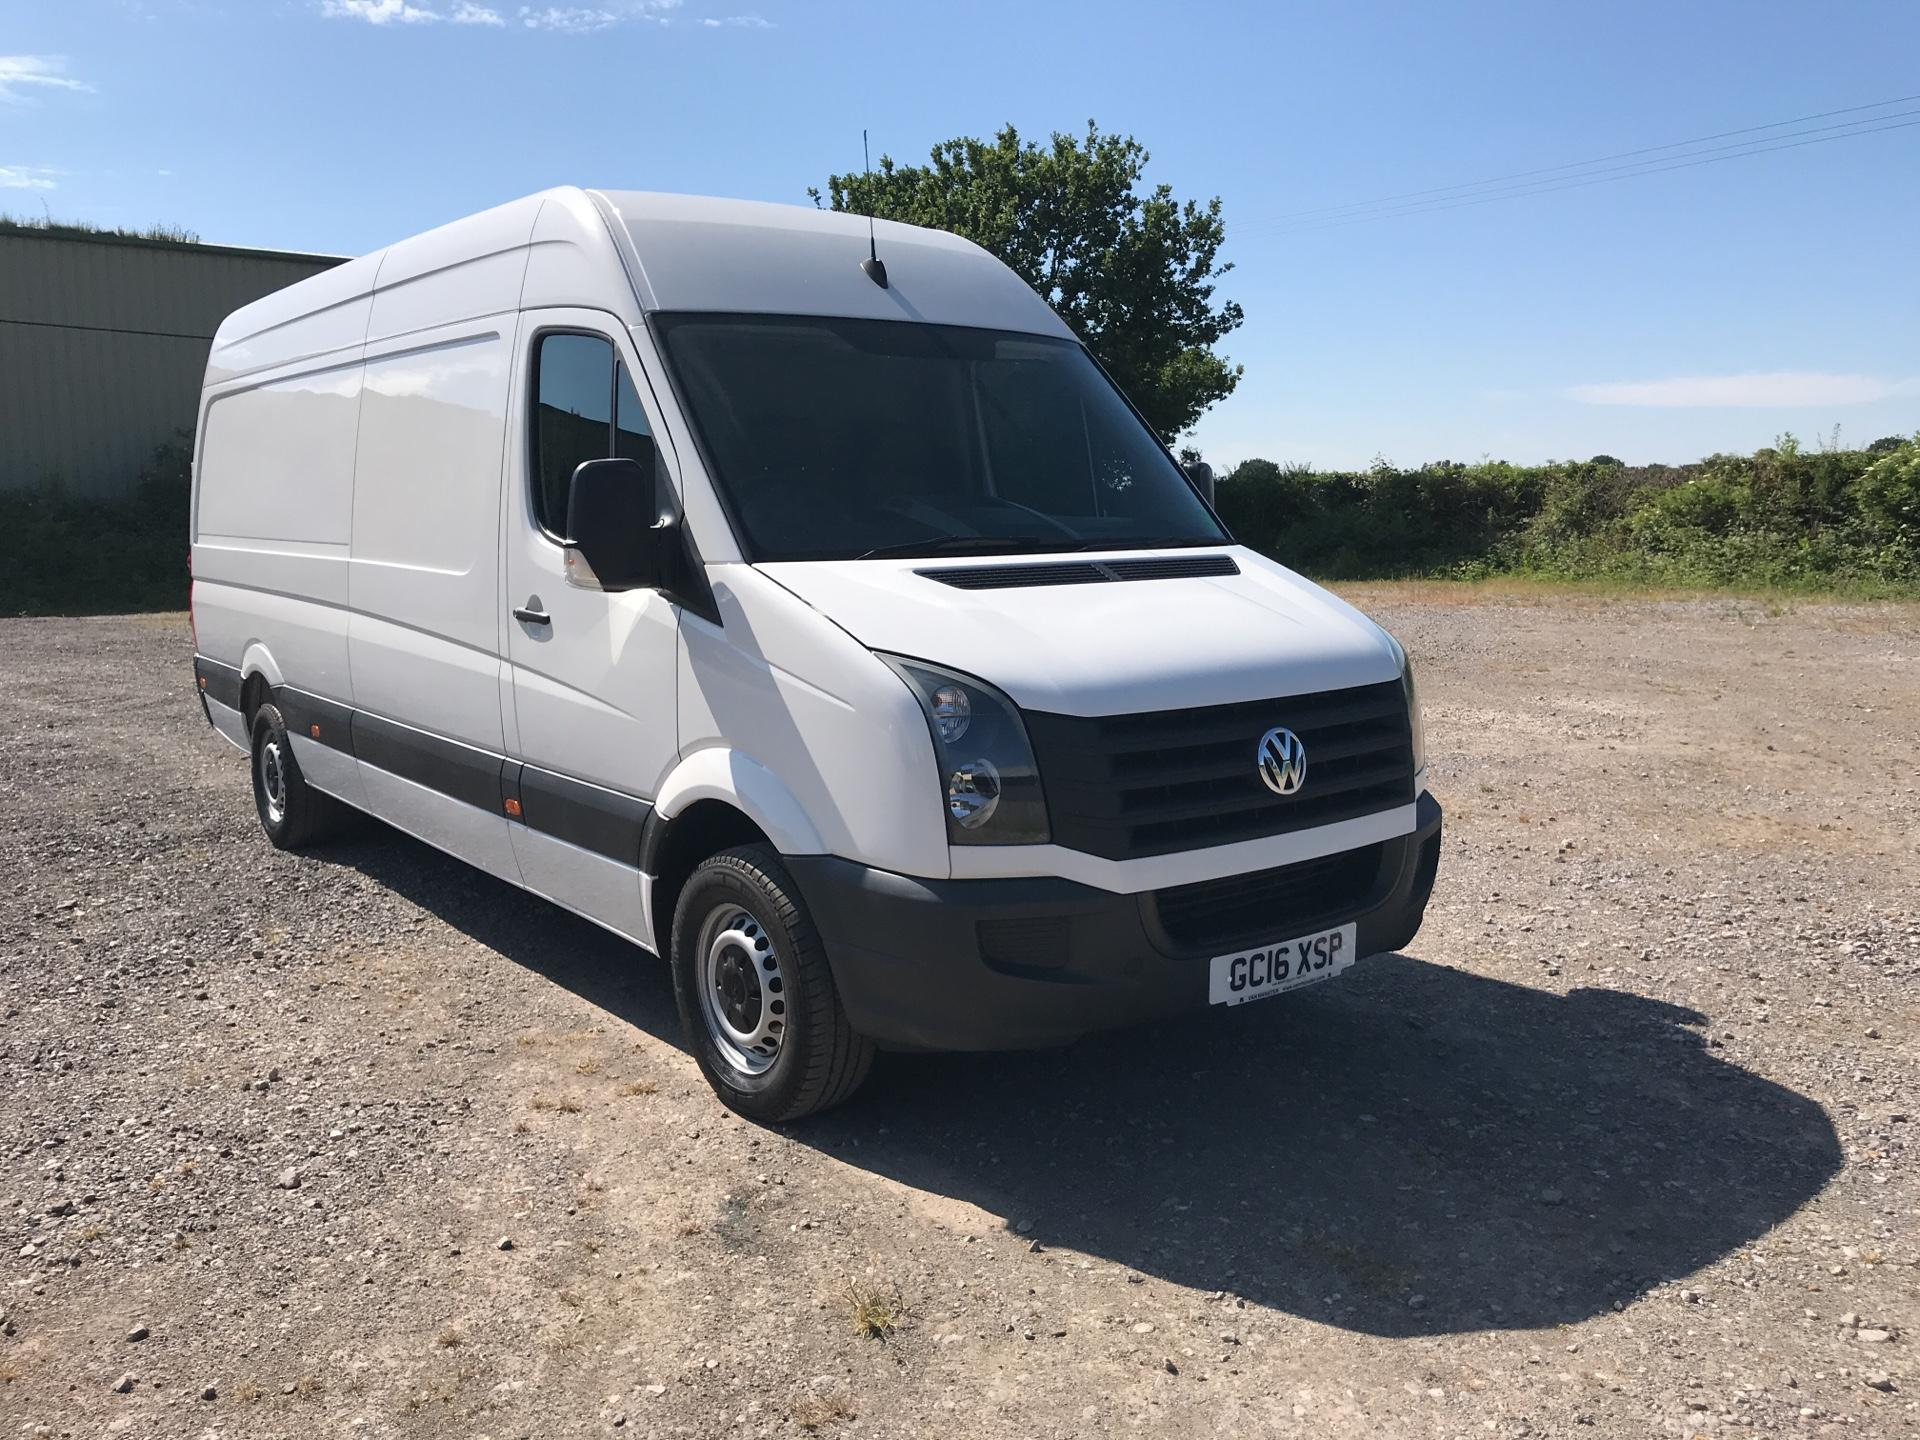 2016 Volkswagen Crafter CR35 LWB 2.0 136PS HIGH ROOF EURO 5 (GC16XSP)